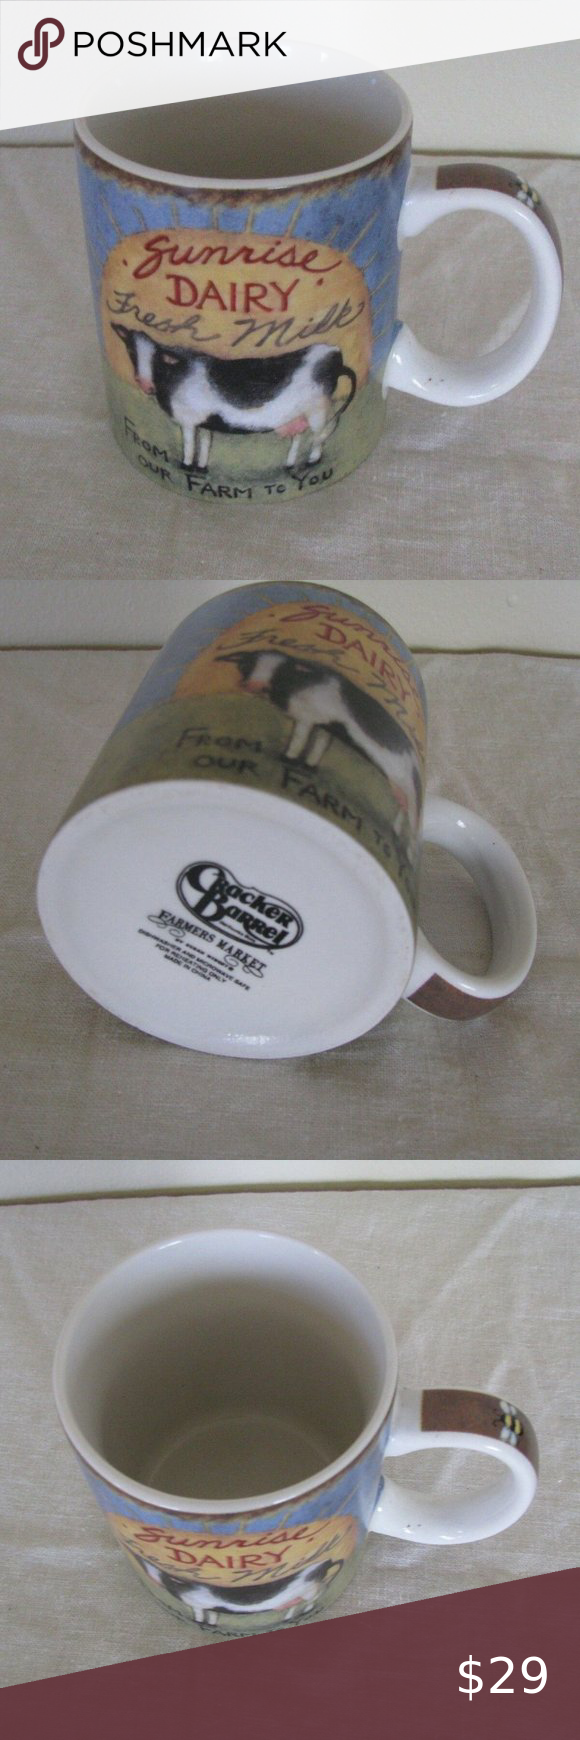 Cracker Barrel Farmers Market 14 Oz Coffee Mug Cracker Barrel Coffee Mugs Mugs